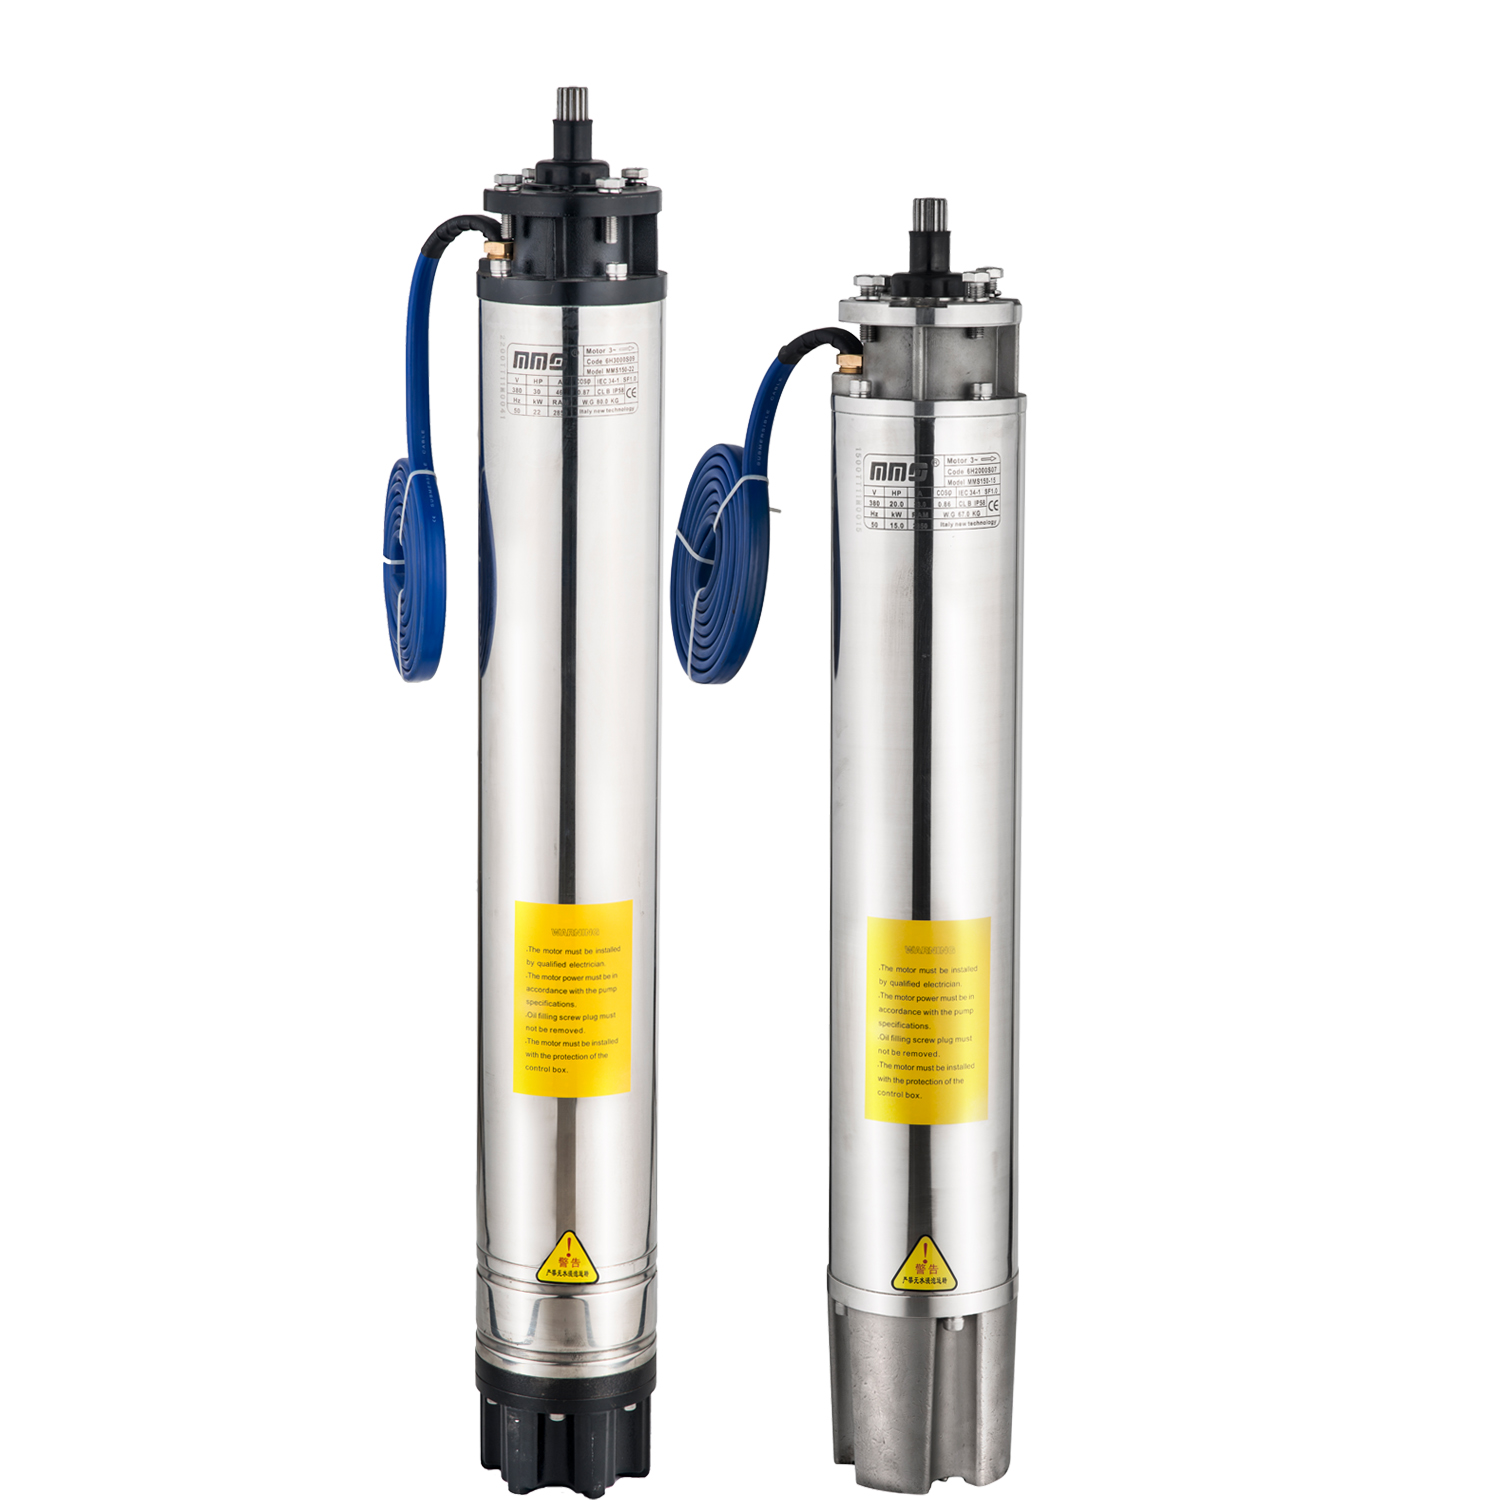 Pump Water Agriculture, Deep Well Centrifugal Irrigation Submersible Pump, 3 Phase Motor